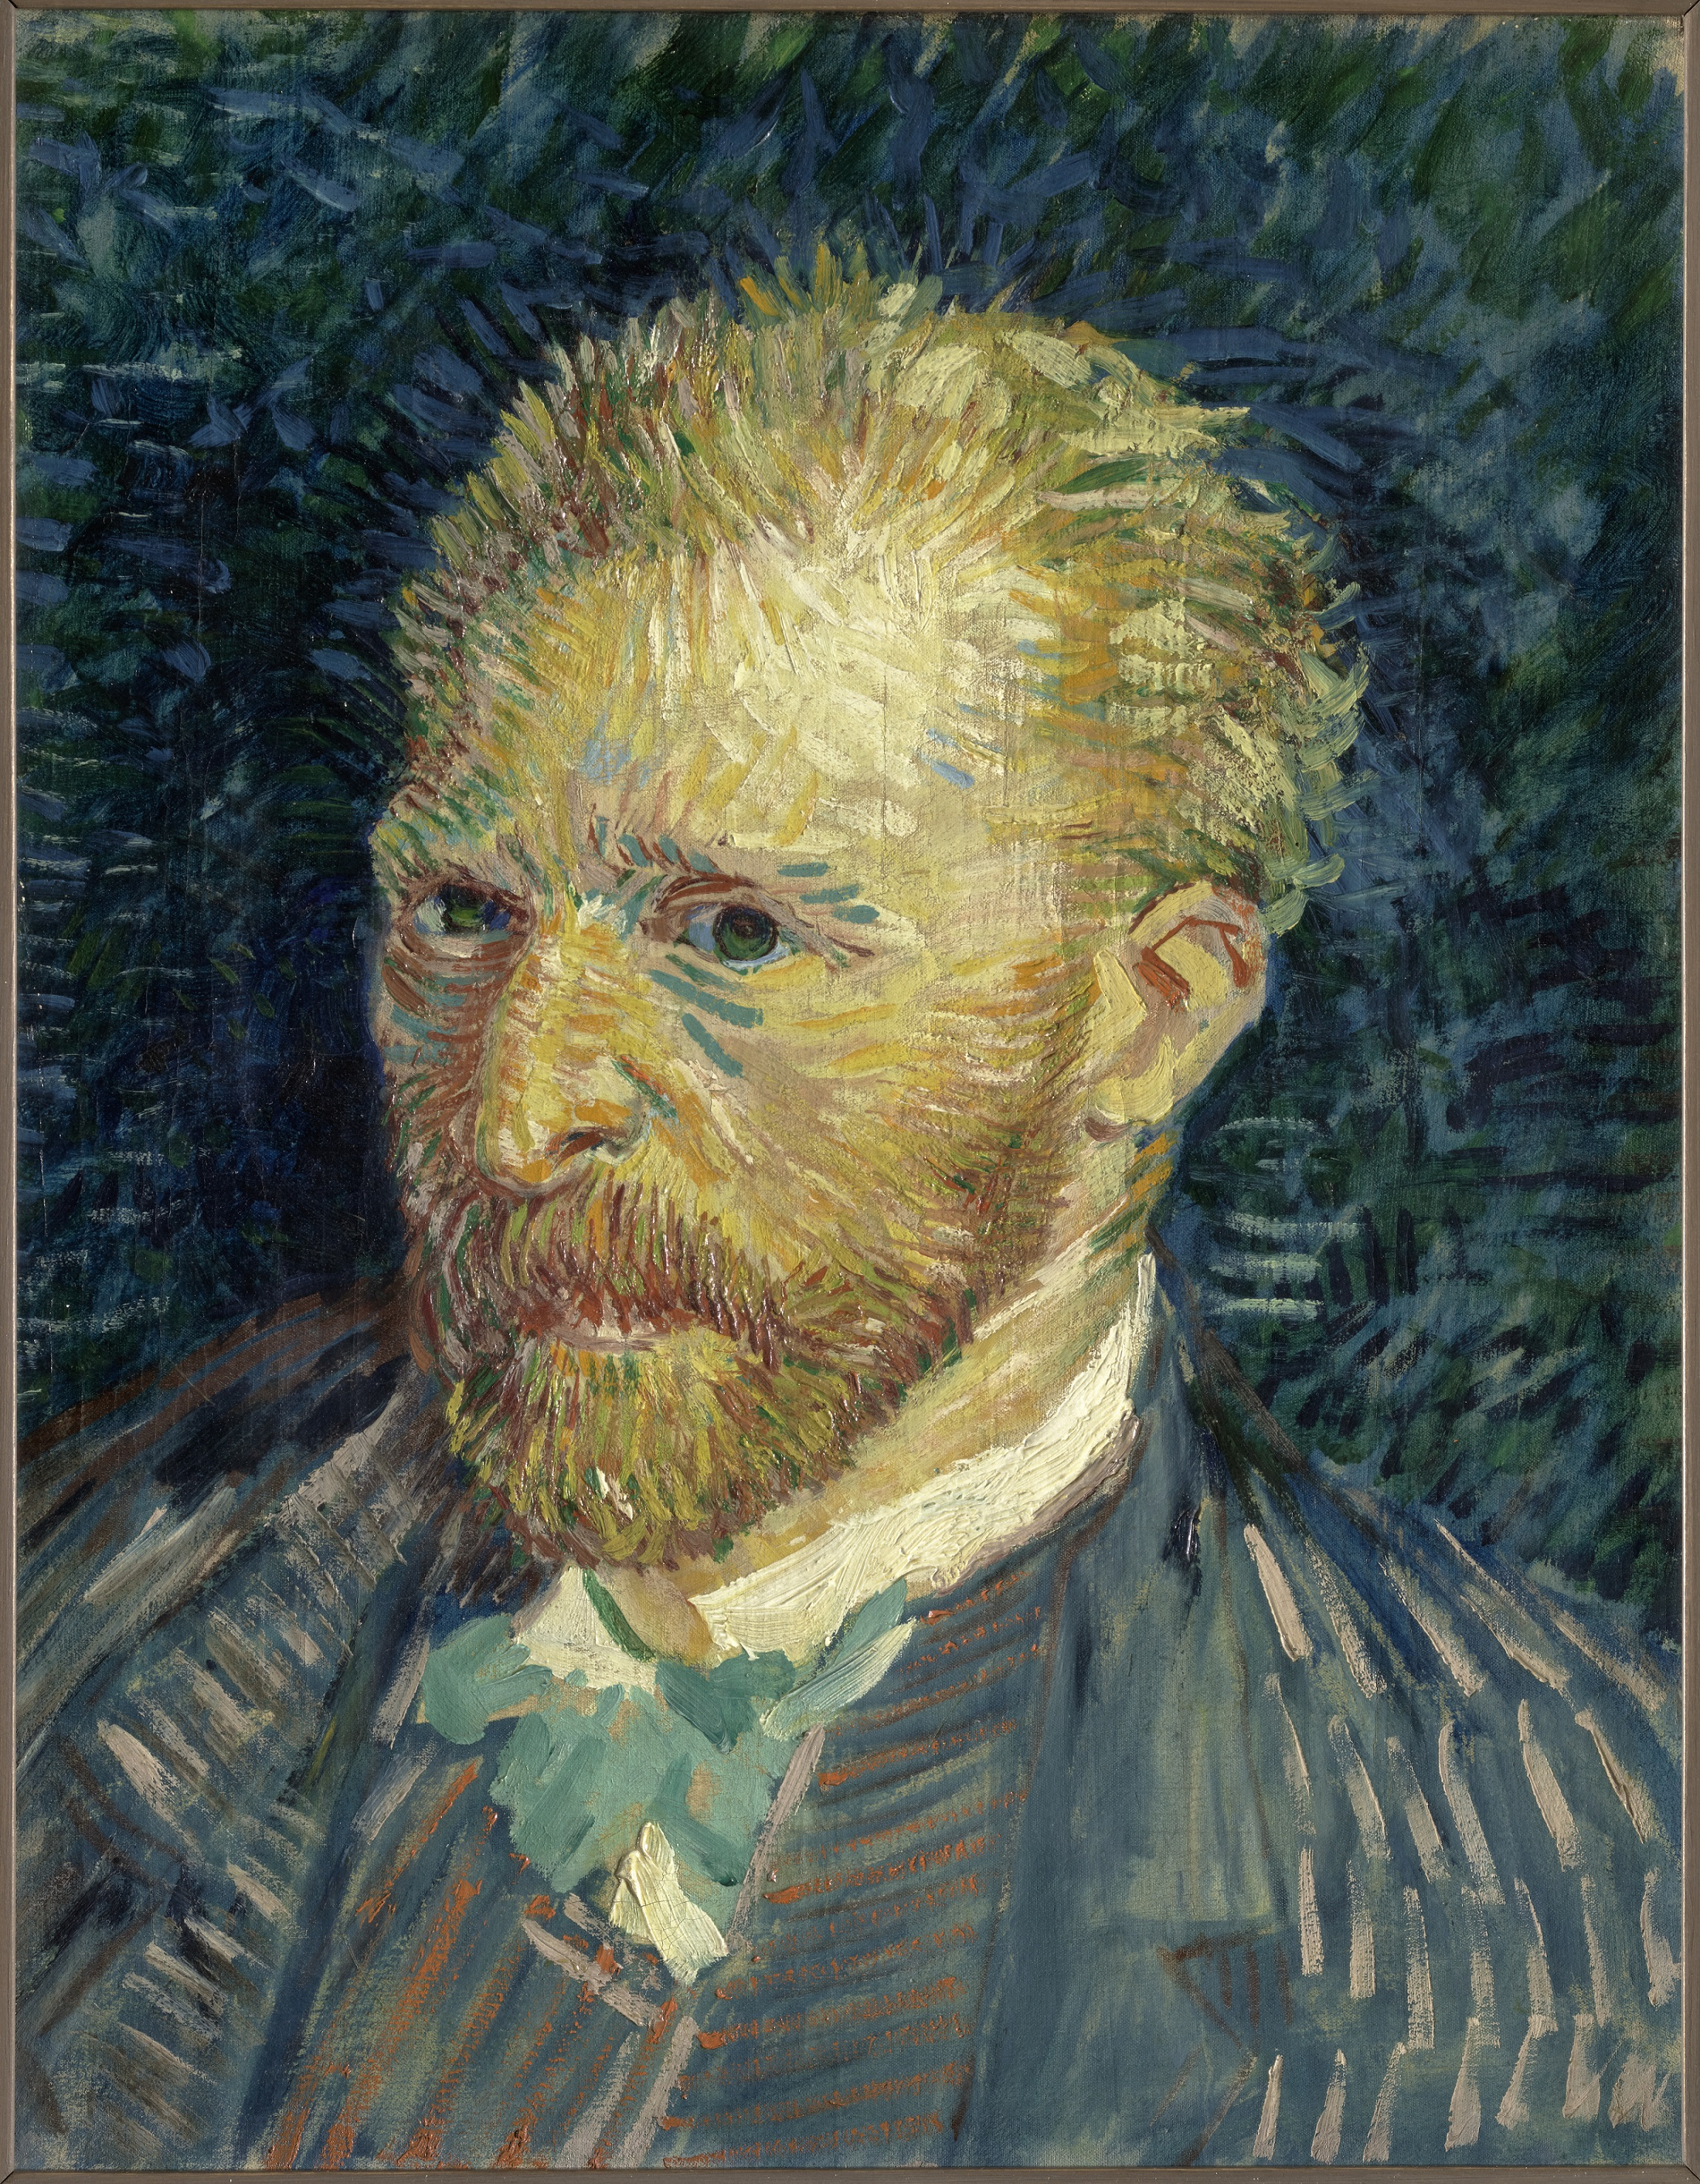 Self Potrait of Vincent van Gogh